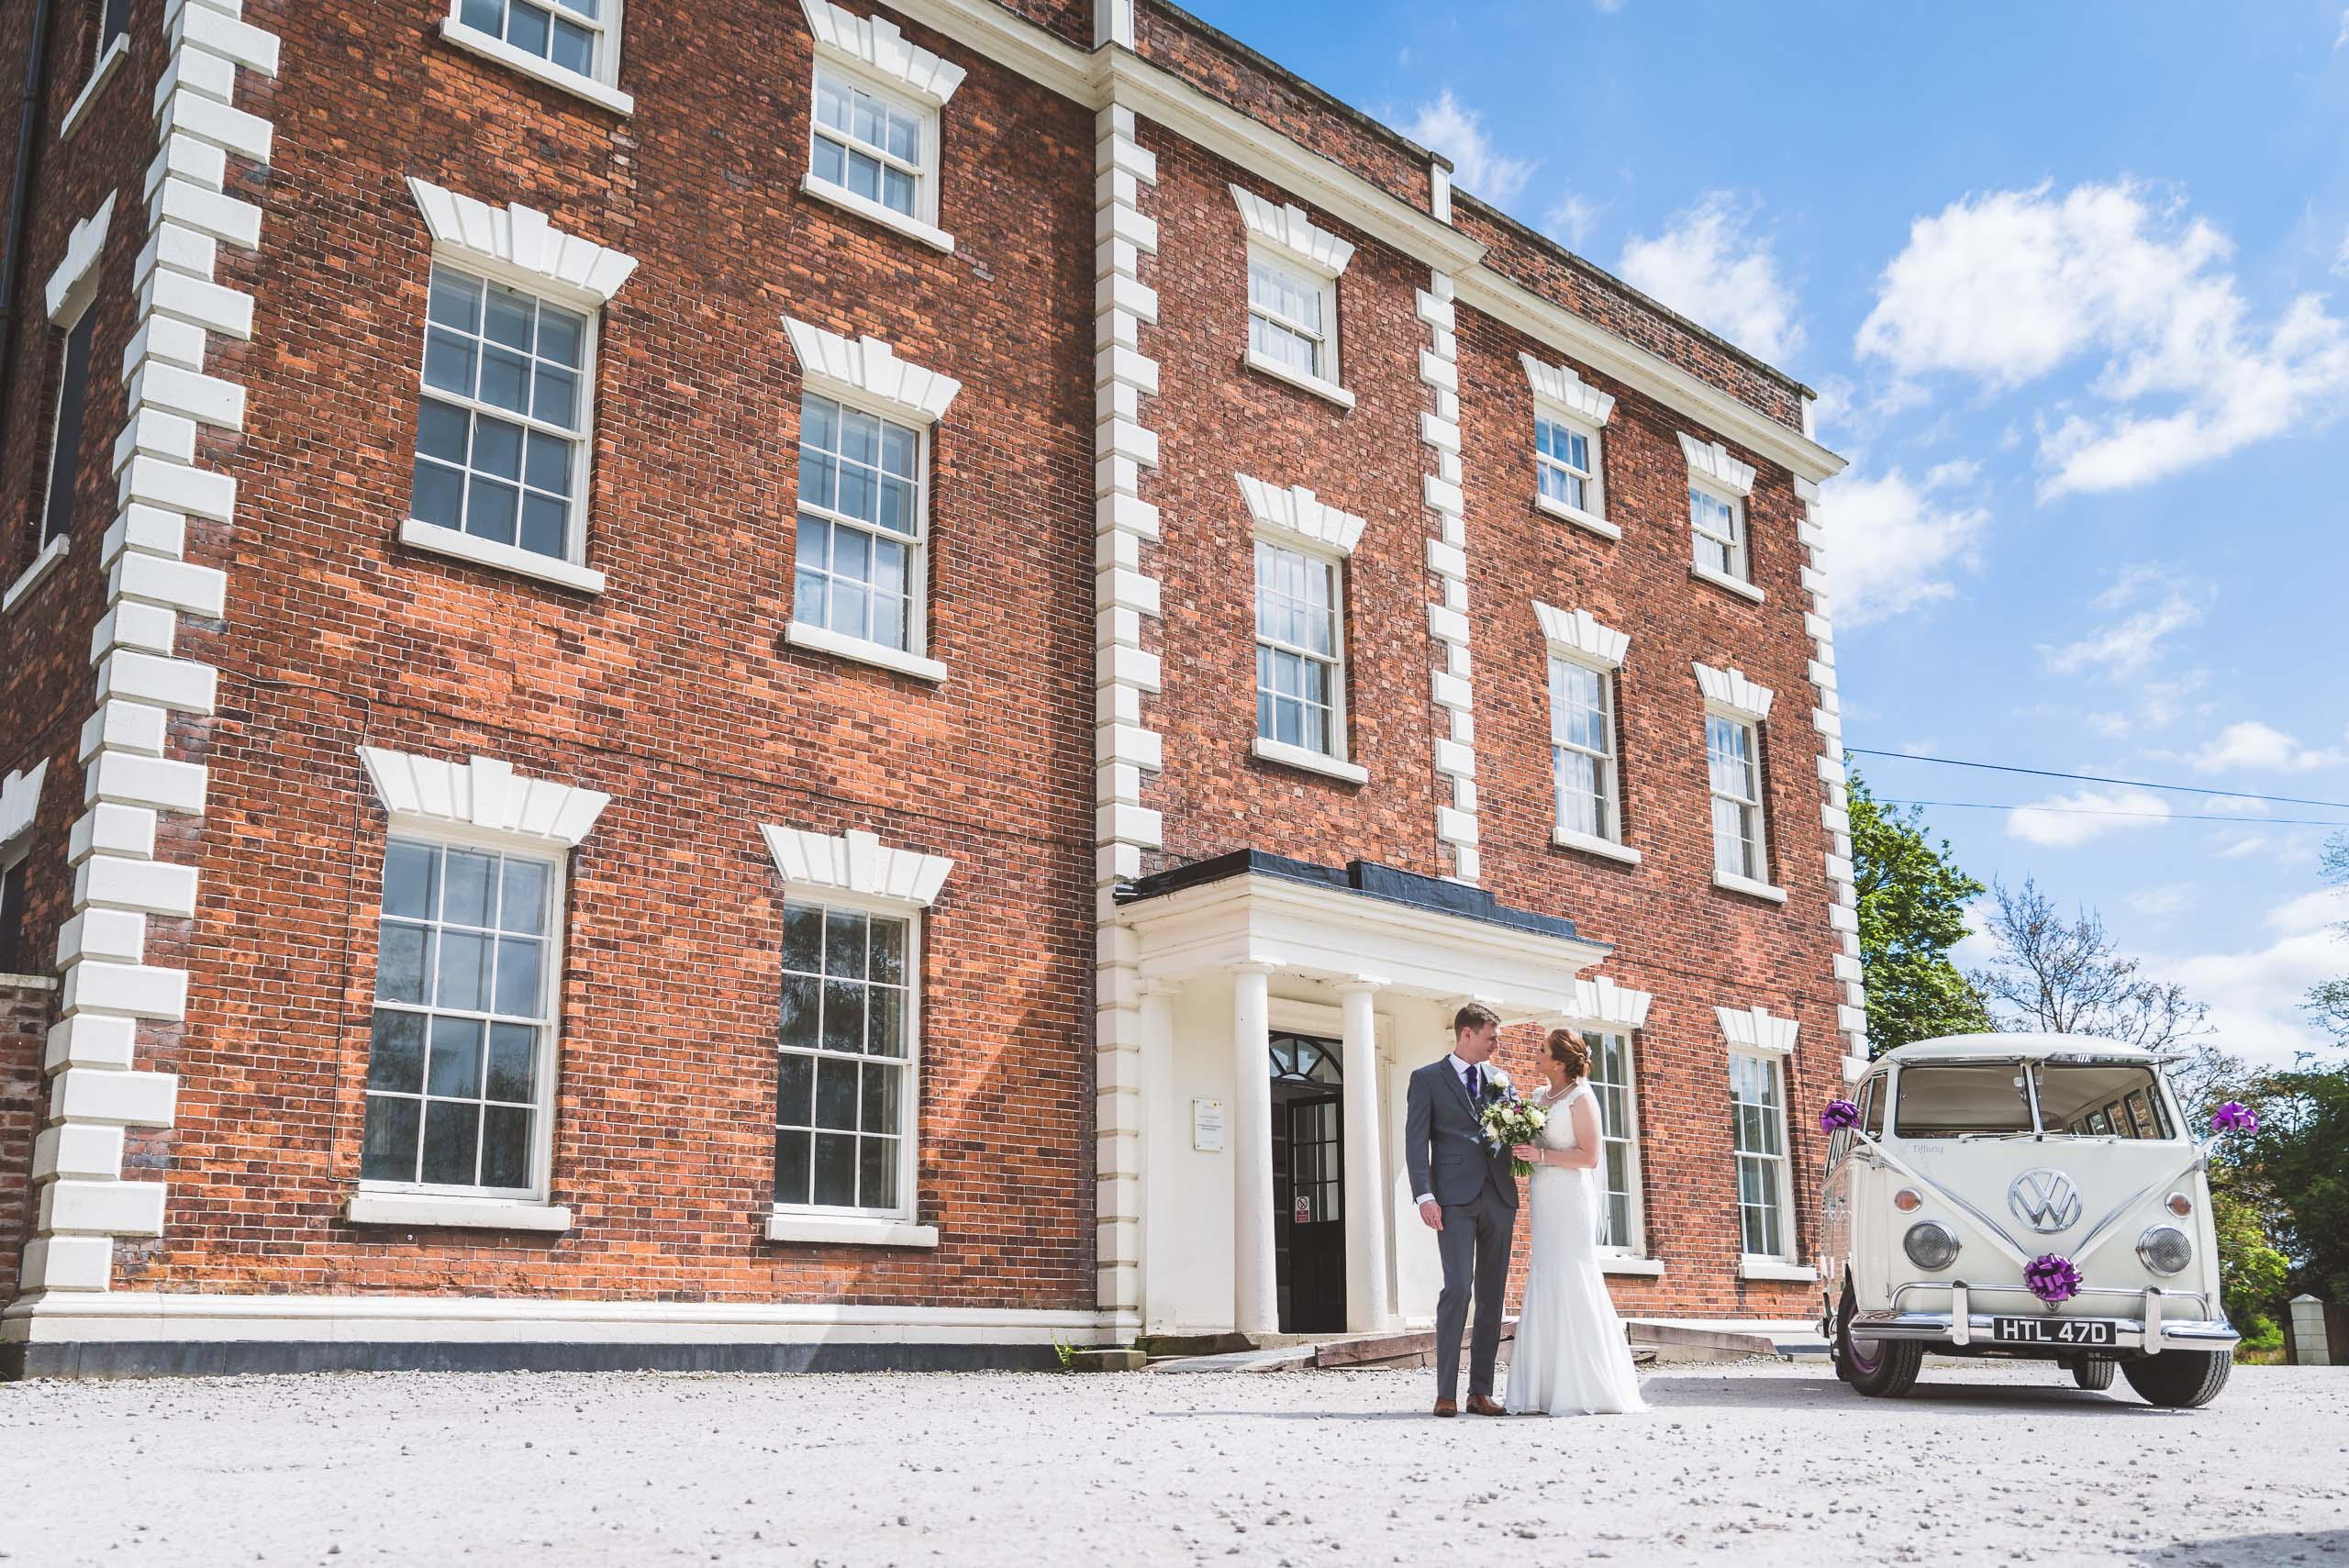 Trafford Hall Wedding Photography